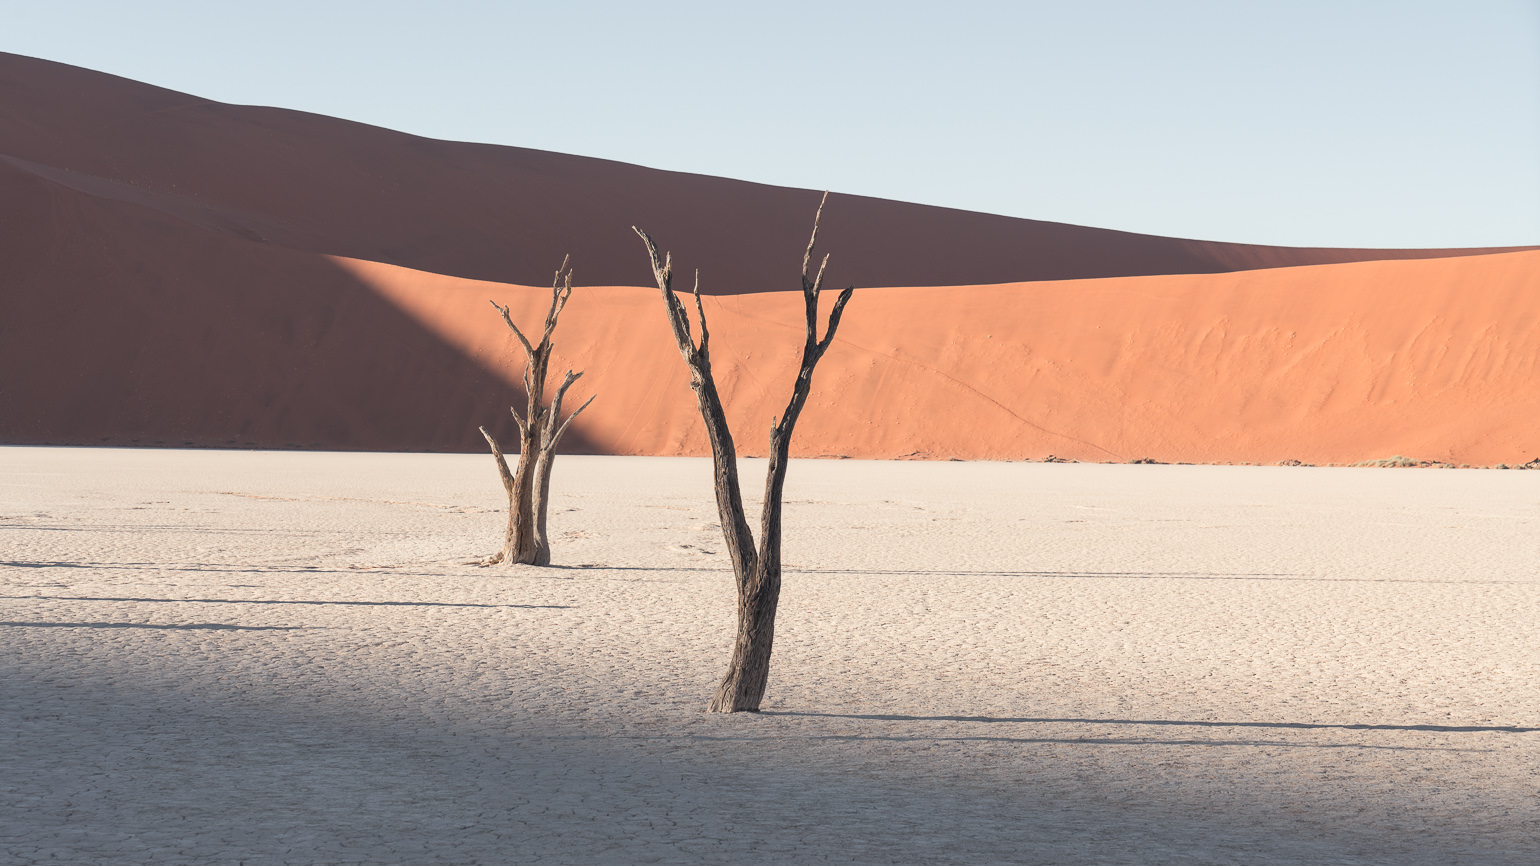 Dawn breaks over the skeleton trees of the Deadvlei pan in Sossusvlei, Namibia